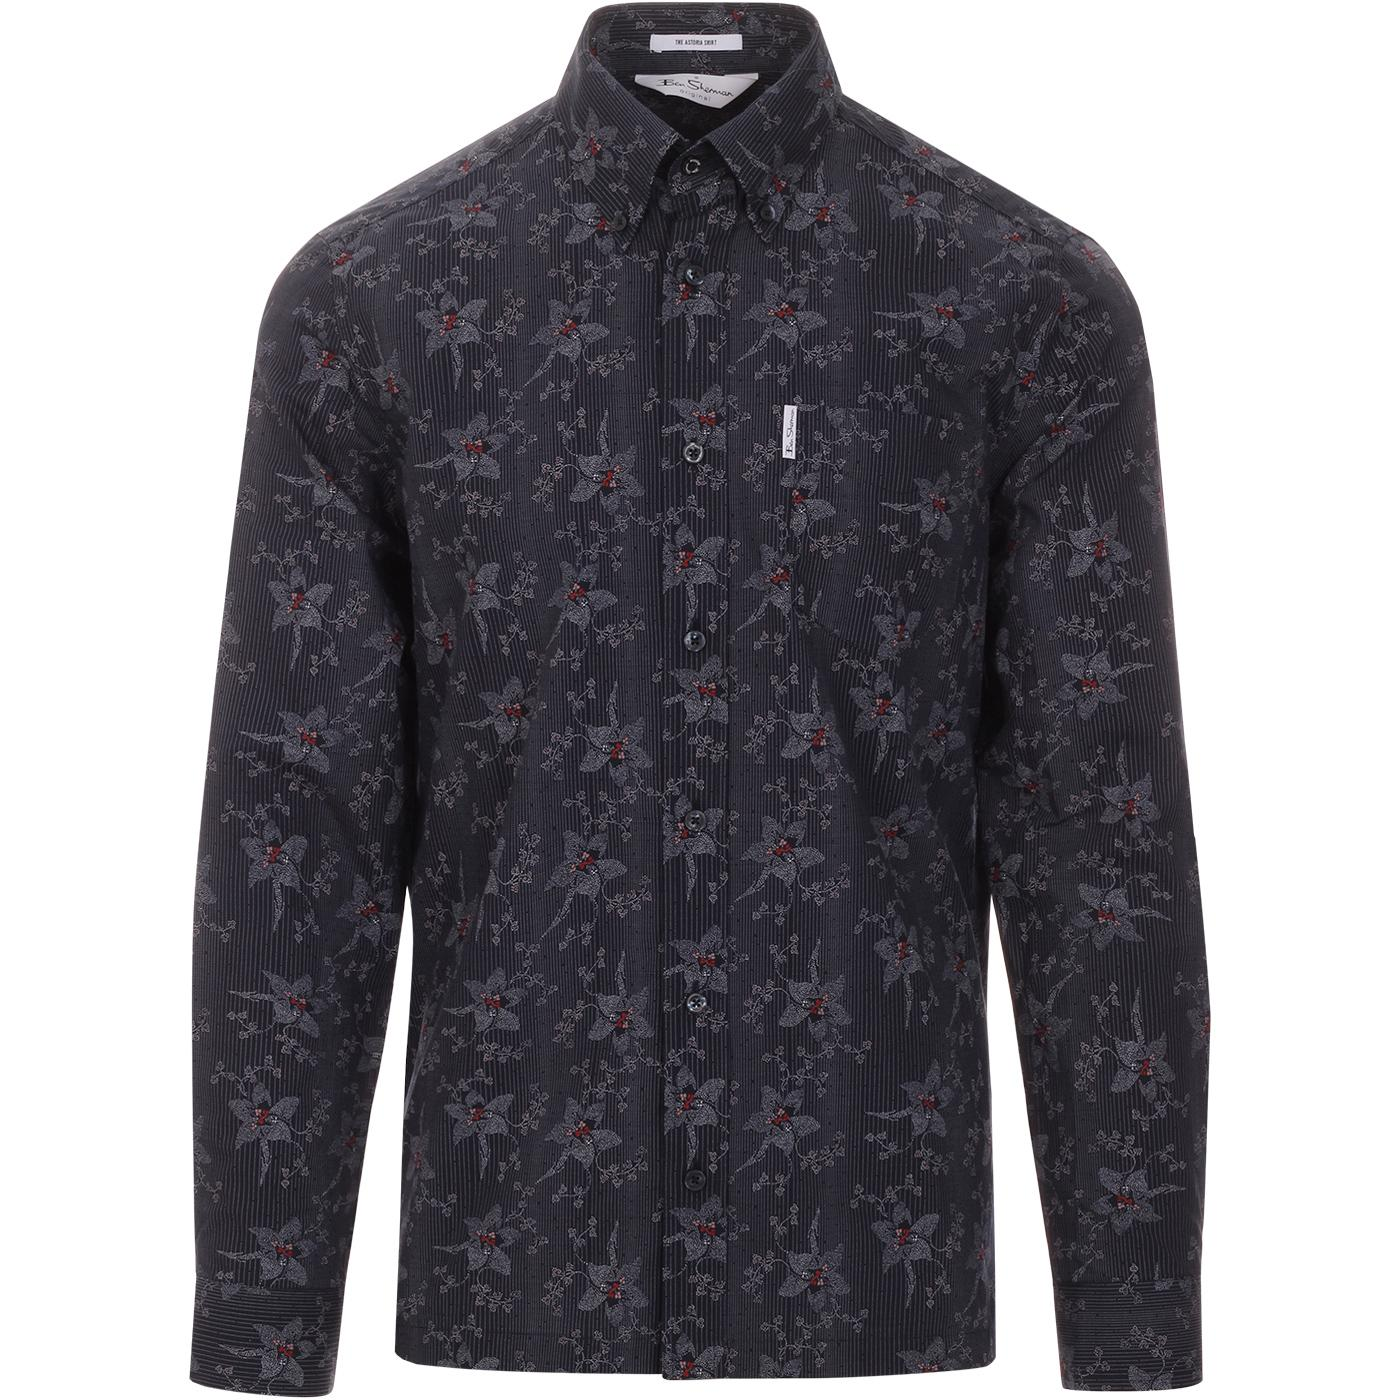 Astoria BEN SHERMAN Archive 1970s Floral Shirt